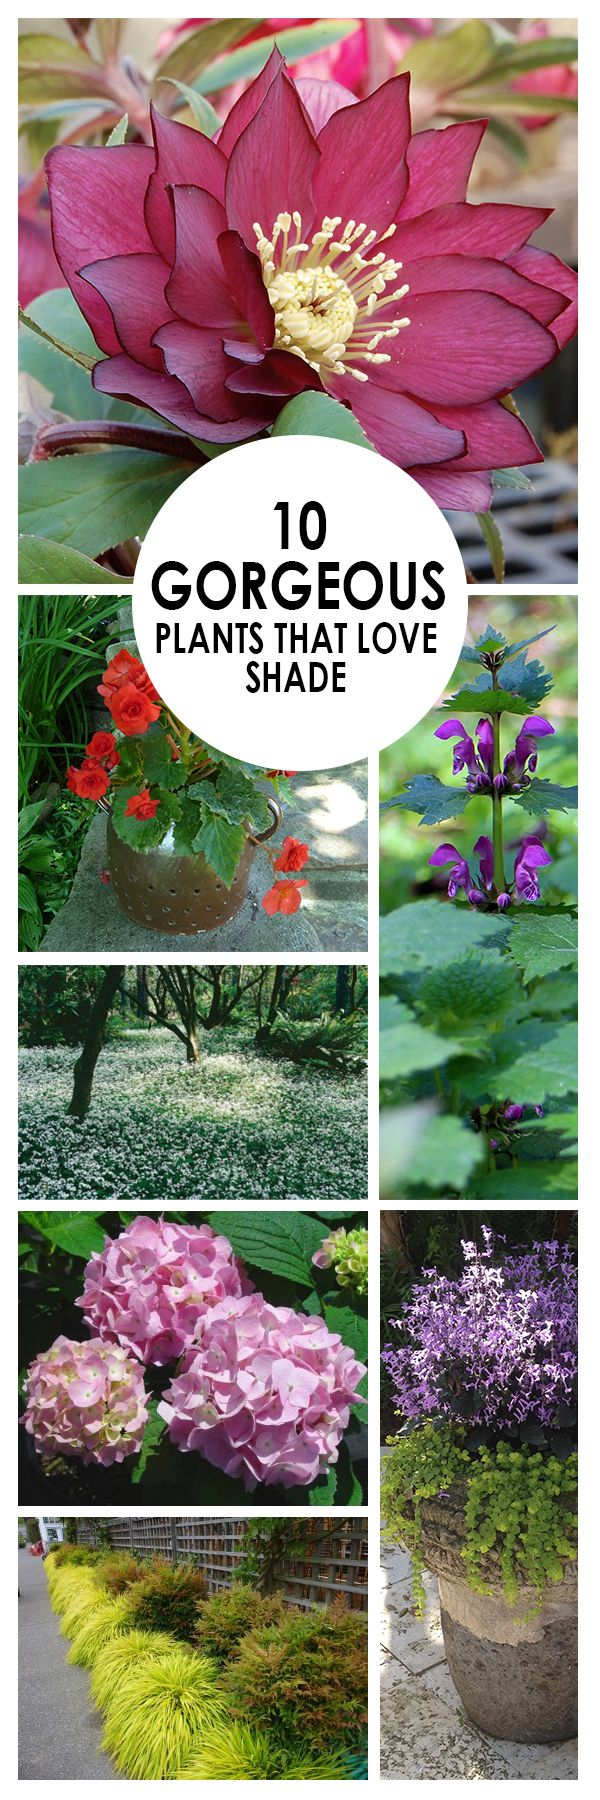 Home Garden Ideas Pictures best 25+ shade garden ideas on pinterest | shade plants, shade